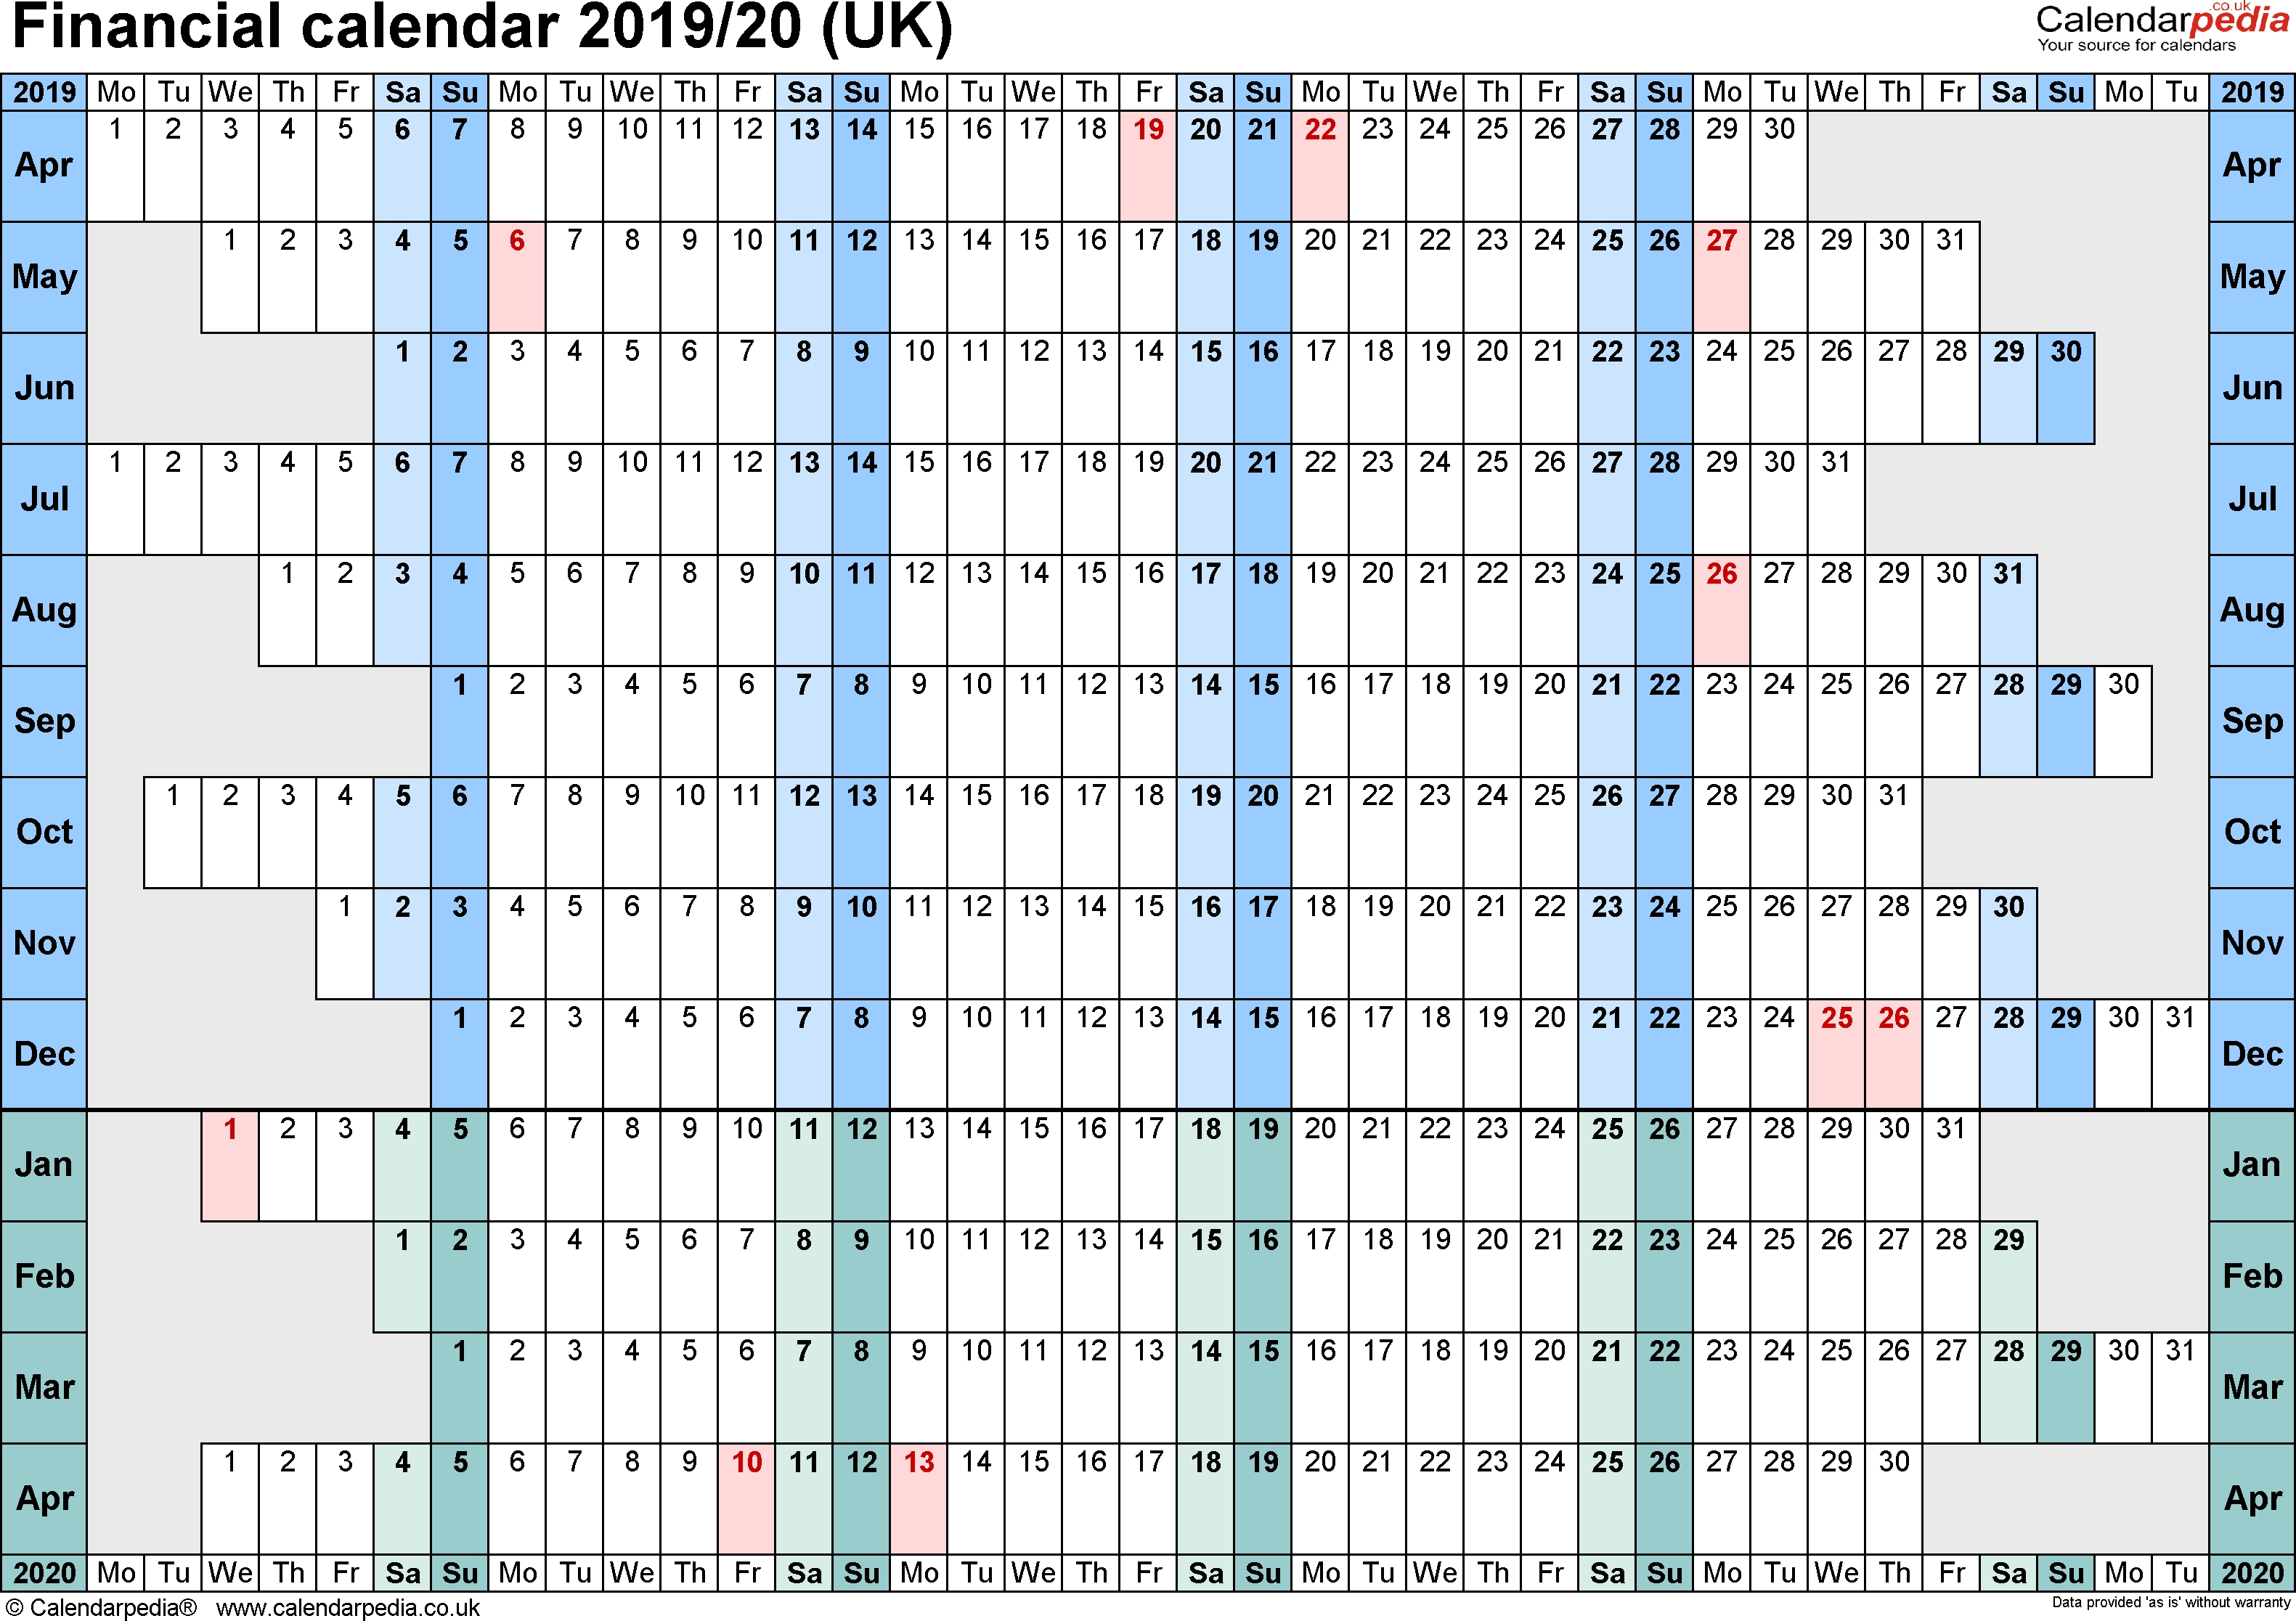 Financial Calendars 2019/20 (Uk) In Pdf Format with regard to Hmrc Tax Weekly Calander 2019-2020